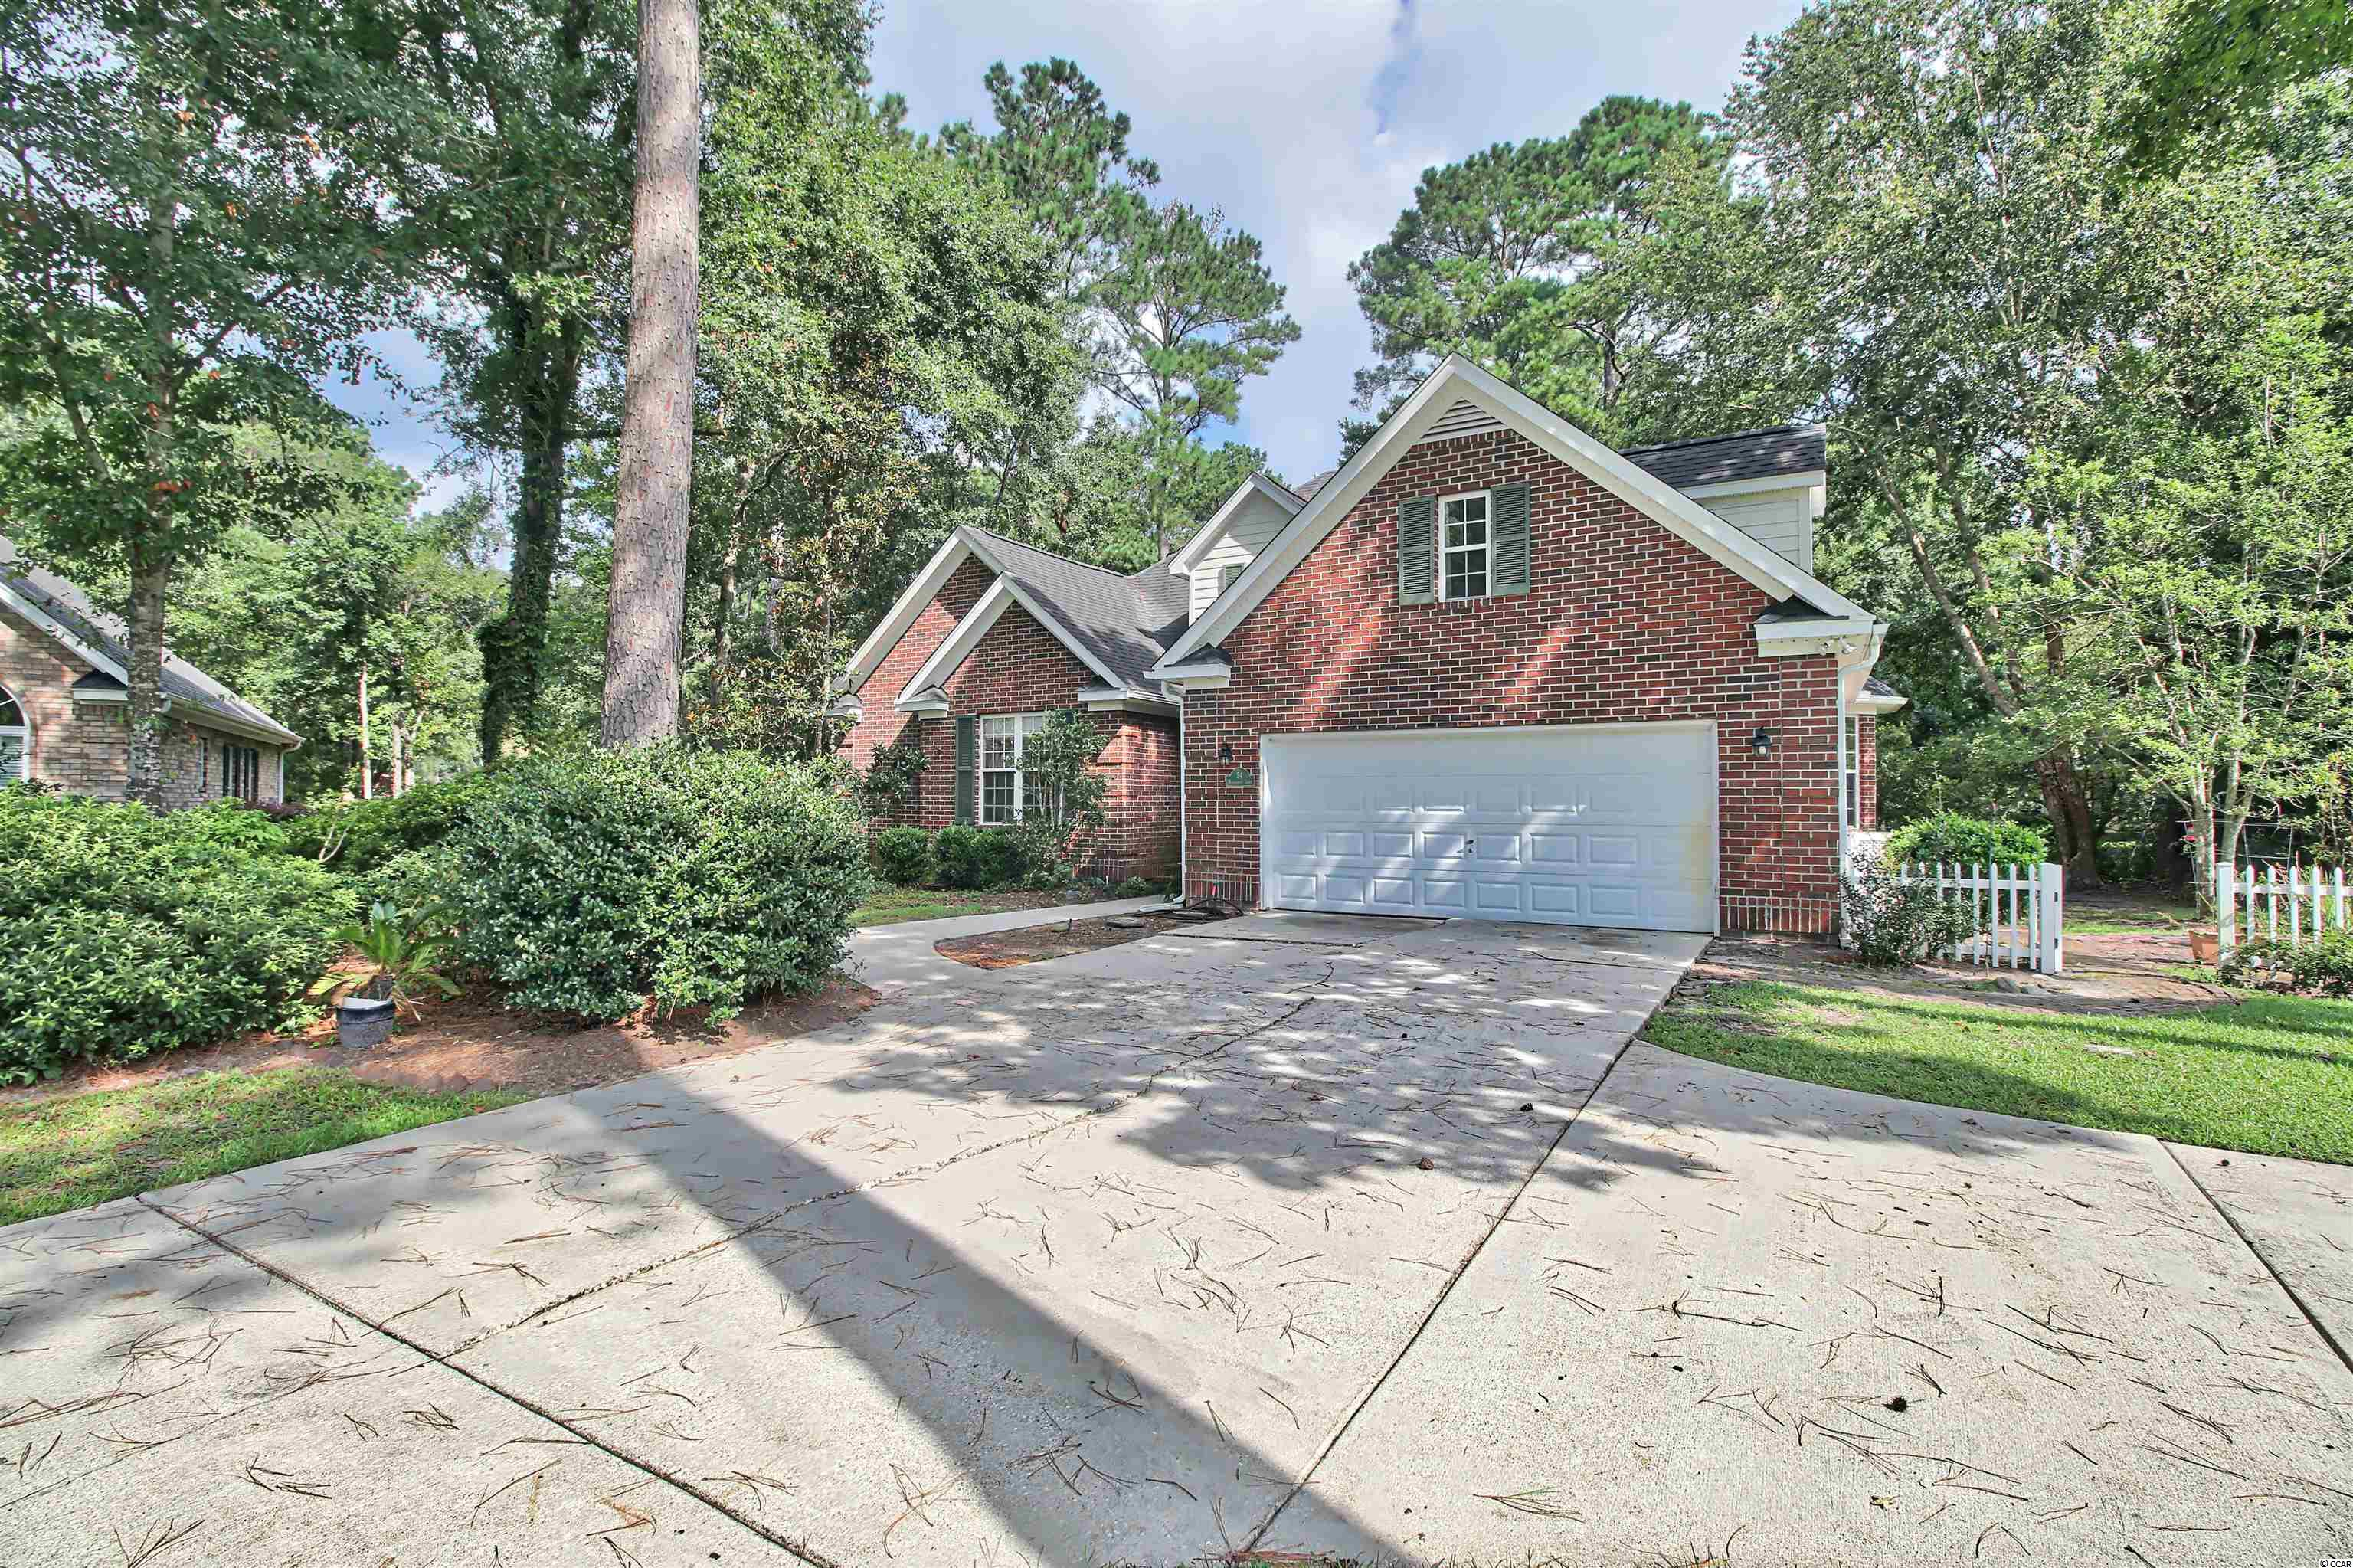 Welcome to 54 Millbranch Lane, located in the gated golf community of River Club.  This four bedroom, two and a half bath brick home is situated on a quiet cul-de-sac.  As you enter the generous foyer, the inviting living room offers a gas burning fireplace, hardwood floors and an abundance of natural light.  The openness of the formal dining area to the living room creates an ideal entertaining space. Accommodations of the kitchen include a breakfast nook, pantry, and ample countertop space and cabinets.  The master bedroom suite and walk in closet are located on the ground floor with 2 additional bedrooms, a shared bathroom, and a powder room.  The fourth bedroom can be found upstairs and would make the perfect home office or playroom. Take the bike path that connects River Club to all the amenities Litchfield by the Sea offers!  HOA fee includes access to oversized community pool, security, plus use of Litchfield by the Sea's clubhouse, fishing docks, walking trails, tennis courts, and pools.